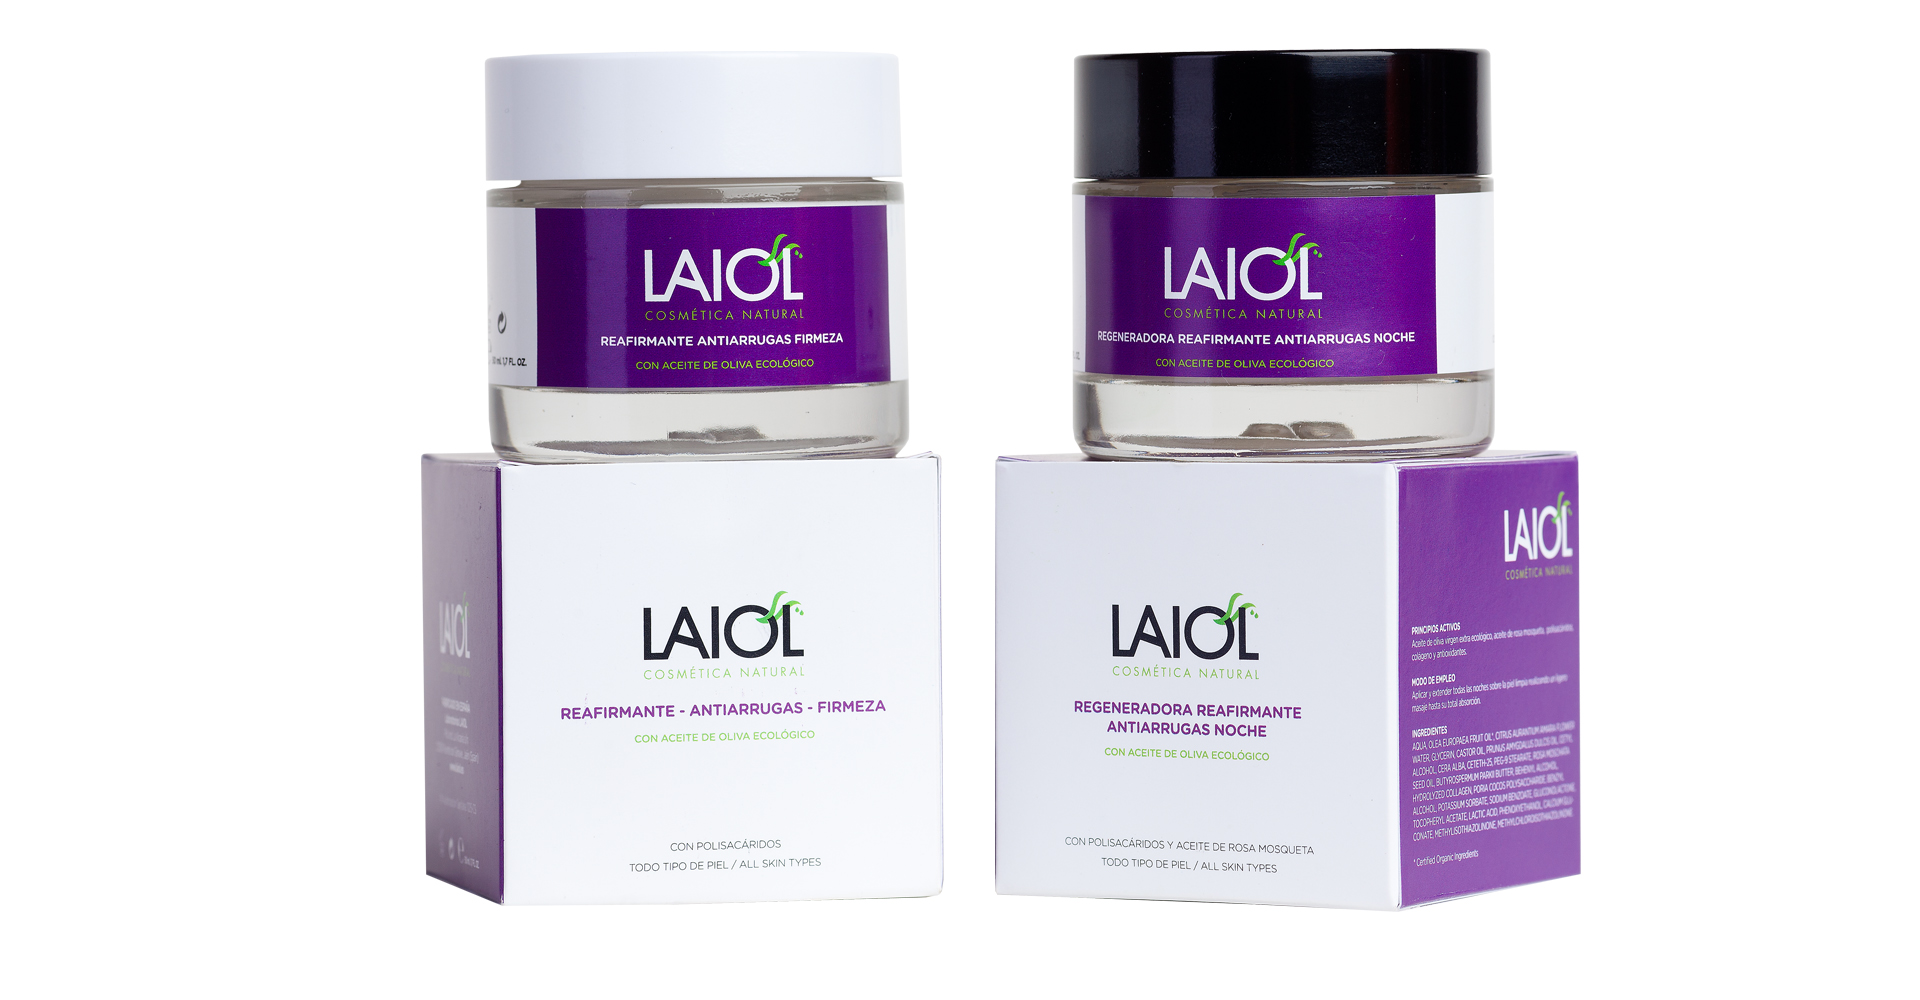 Diseño packaging Laiol cosmetics natural